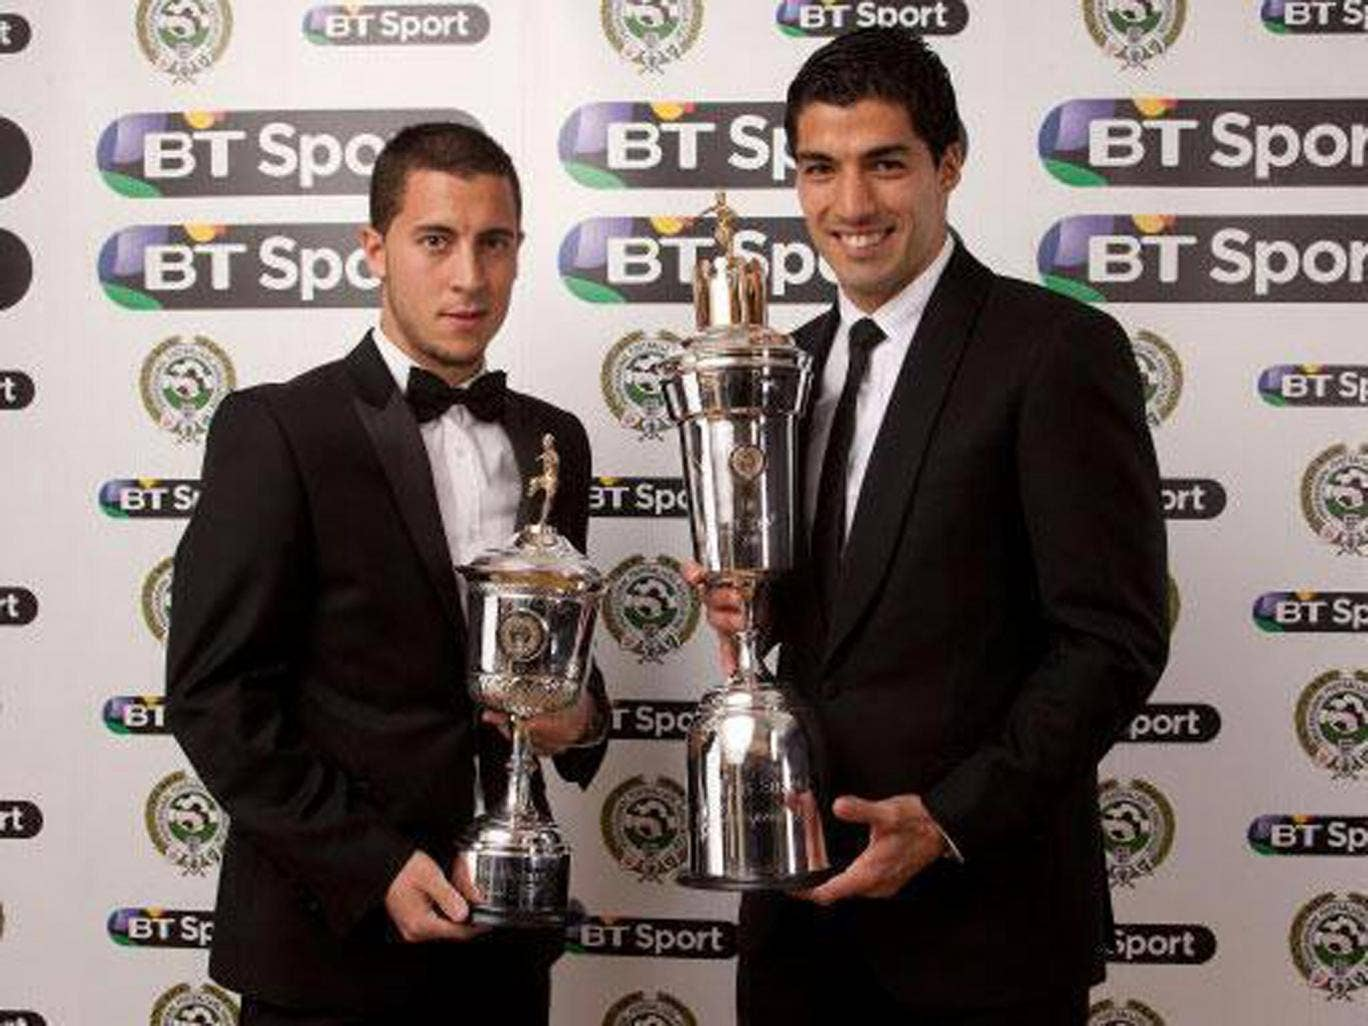 Eden Hazard and Luis Suarez celebrate their respective Young Player and Player of the Year awards at the PFA's ceremony on Sunday